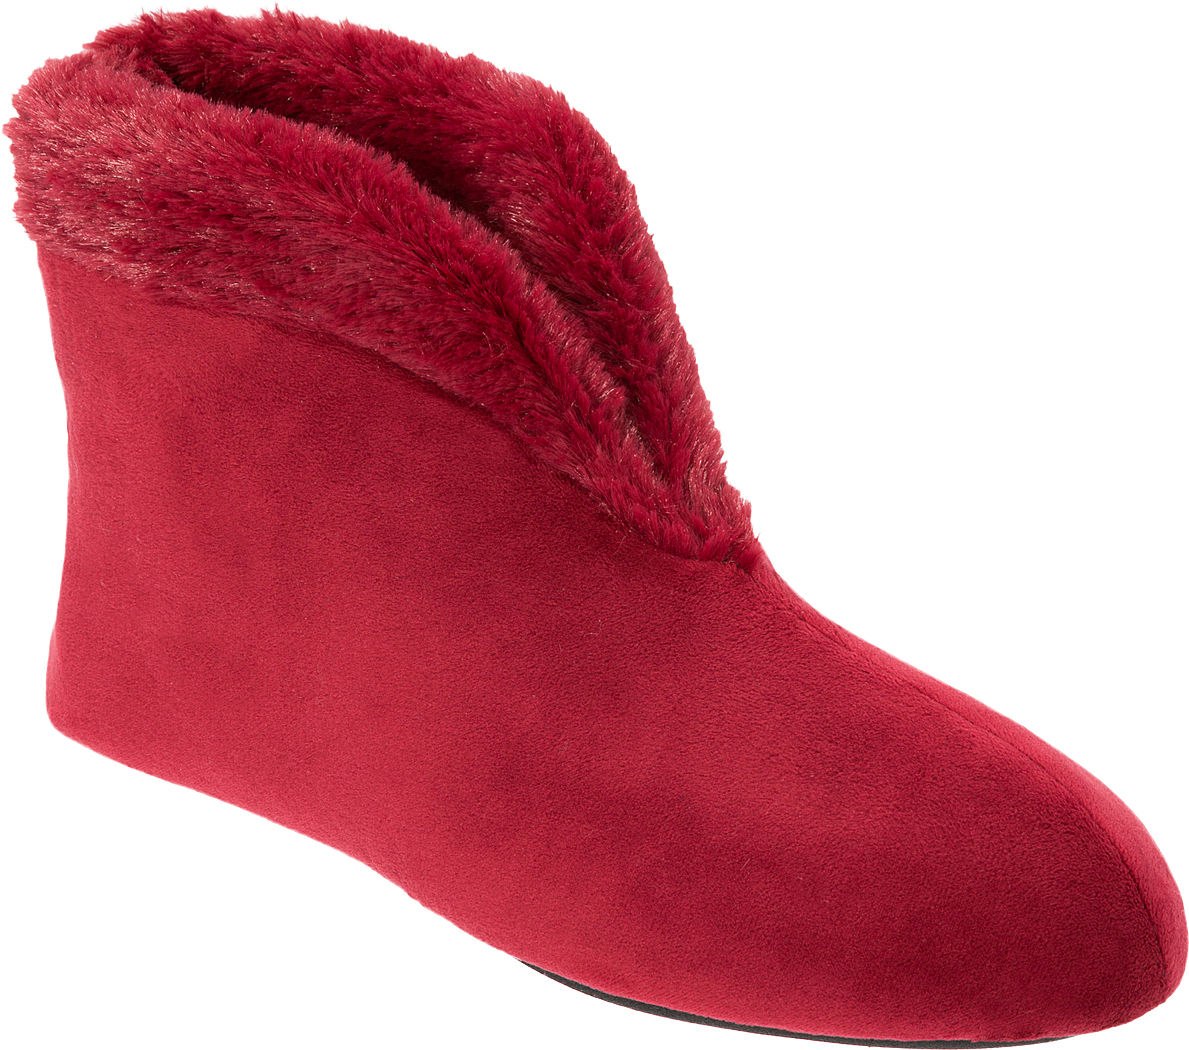 Dearfoams Womens Solid Velour Boot Slippers